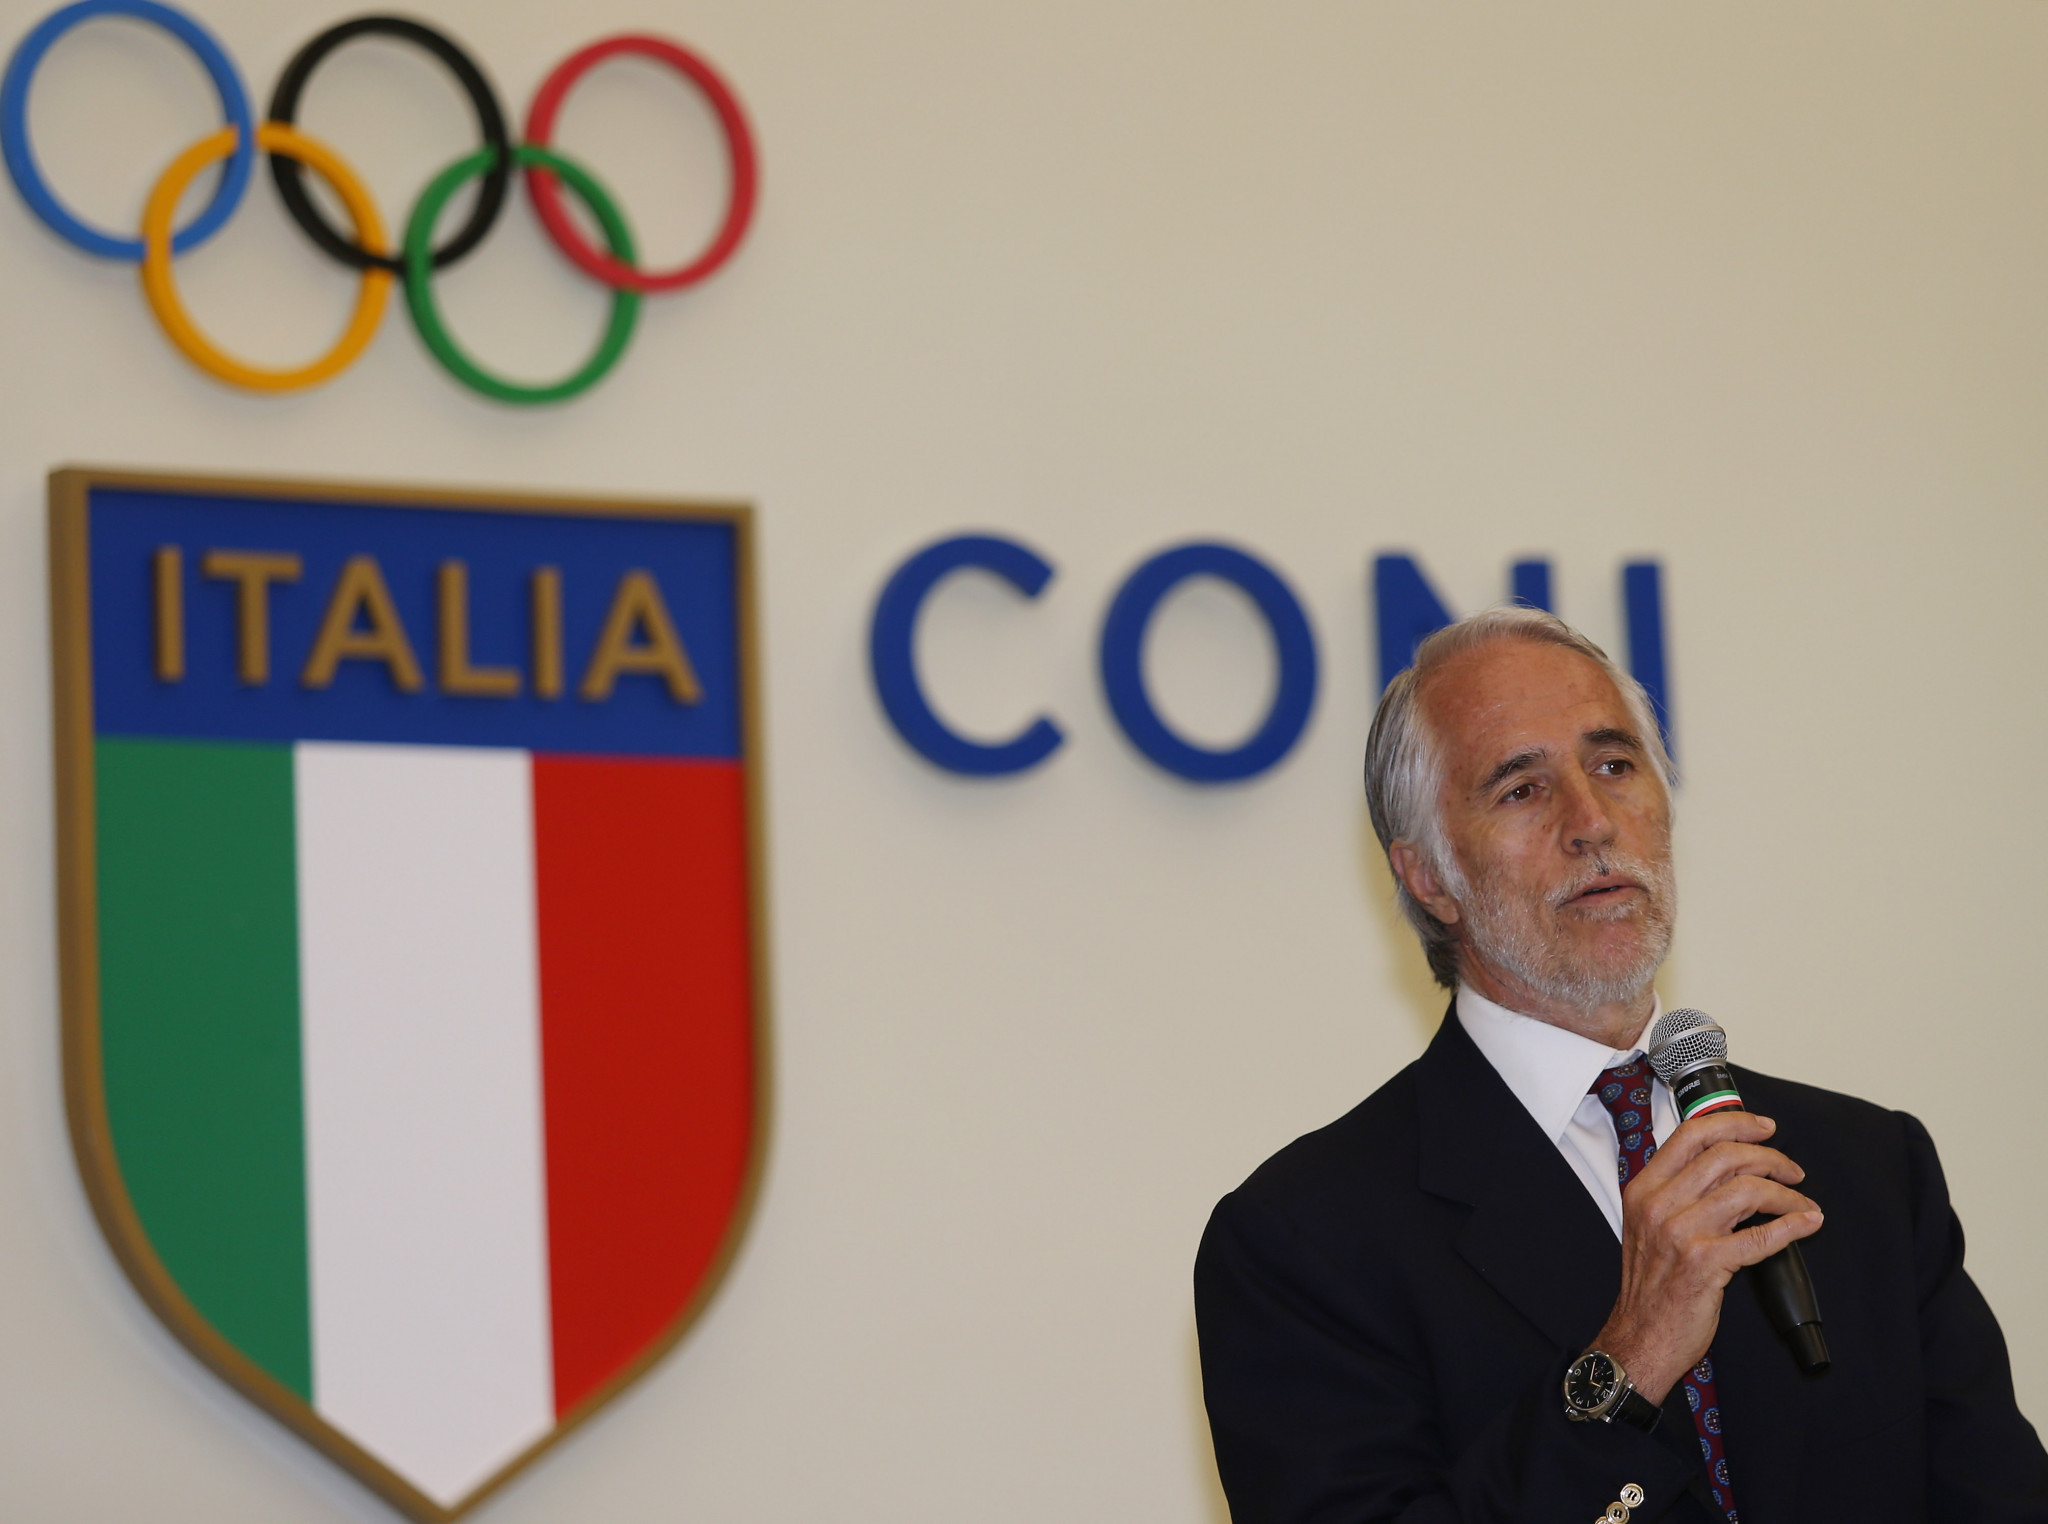 Giovanni Malago will chair the key CONI meeting tomorrow ©Getty Images